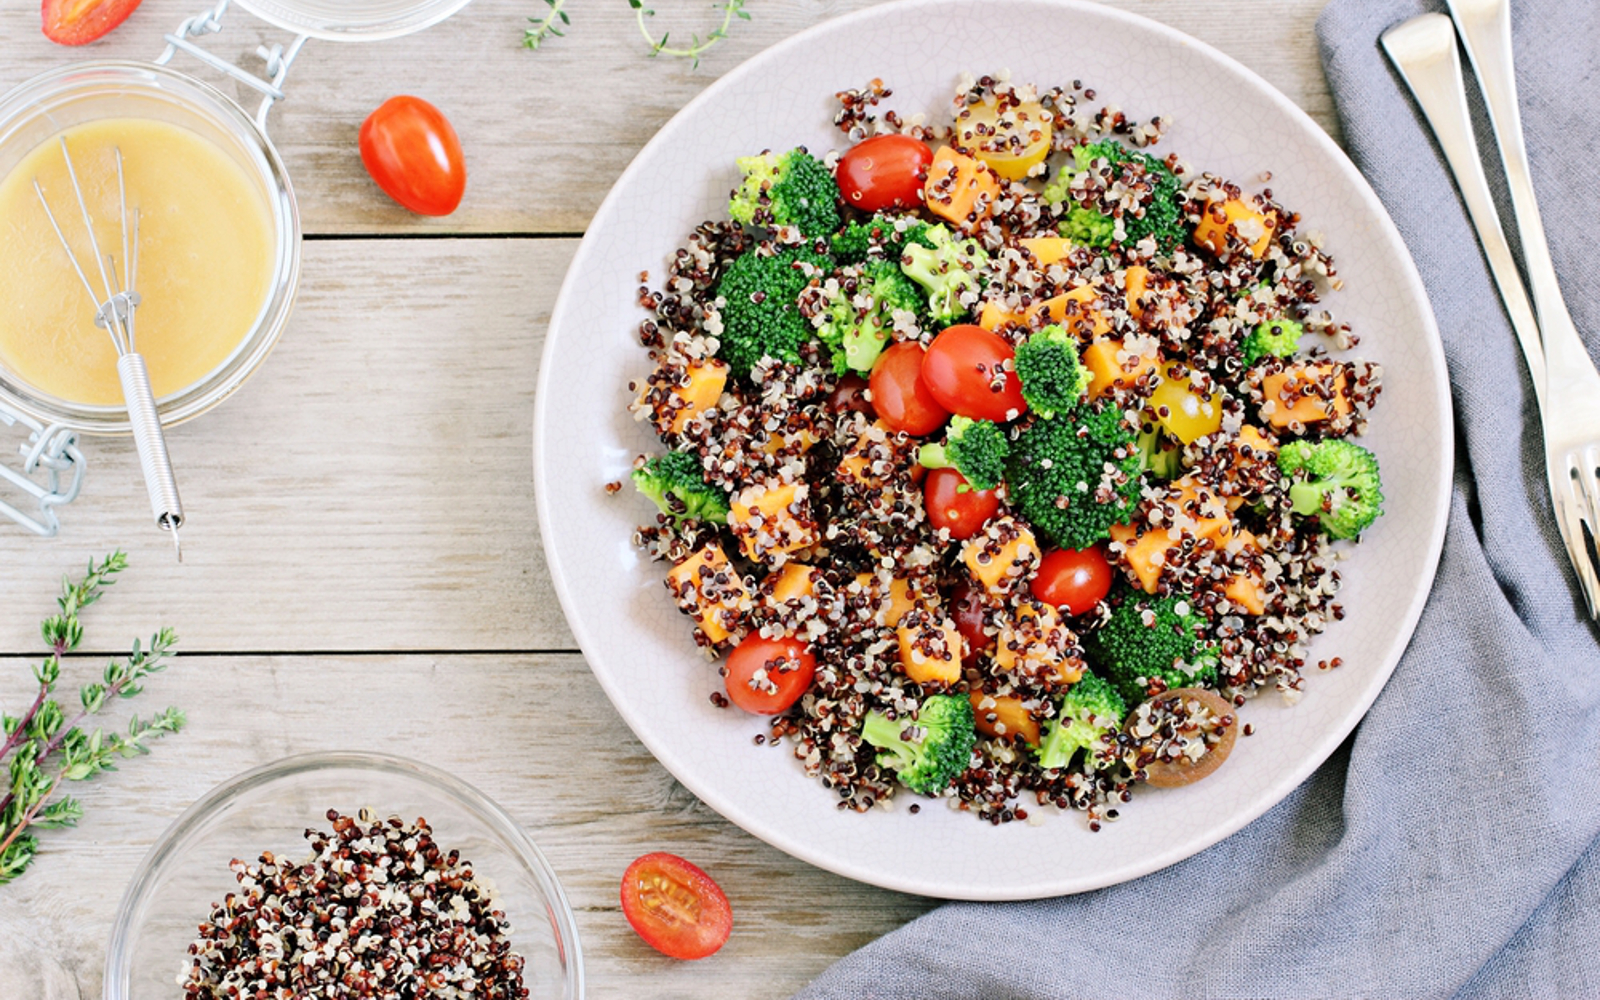 Vegan, Very colorful Quinoa salad with tomatoes, broccoli, and dressing